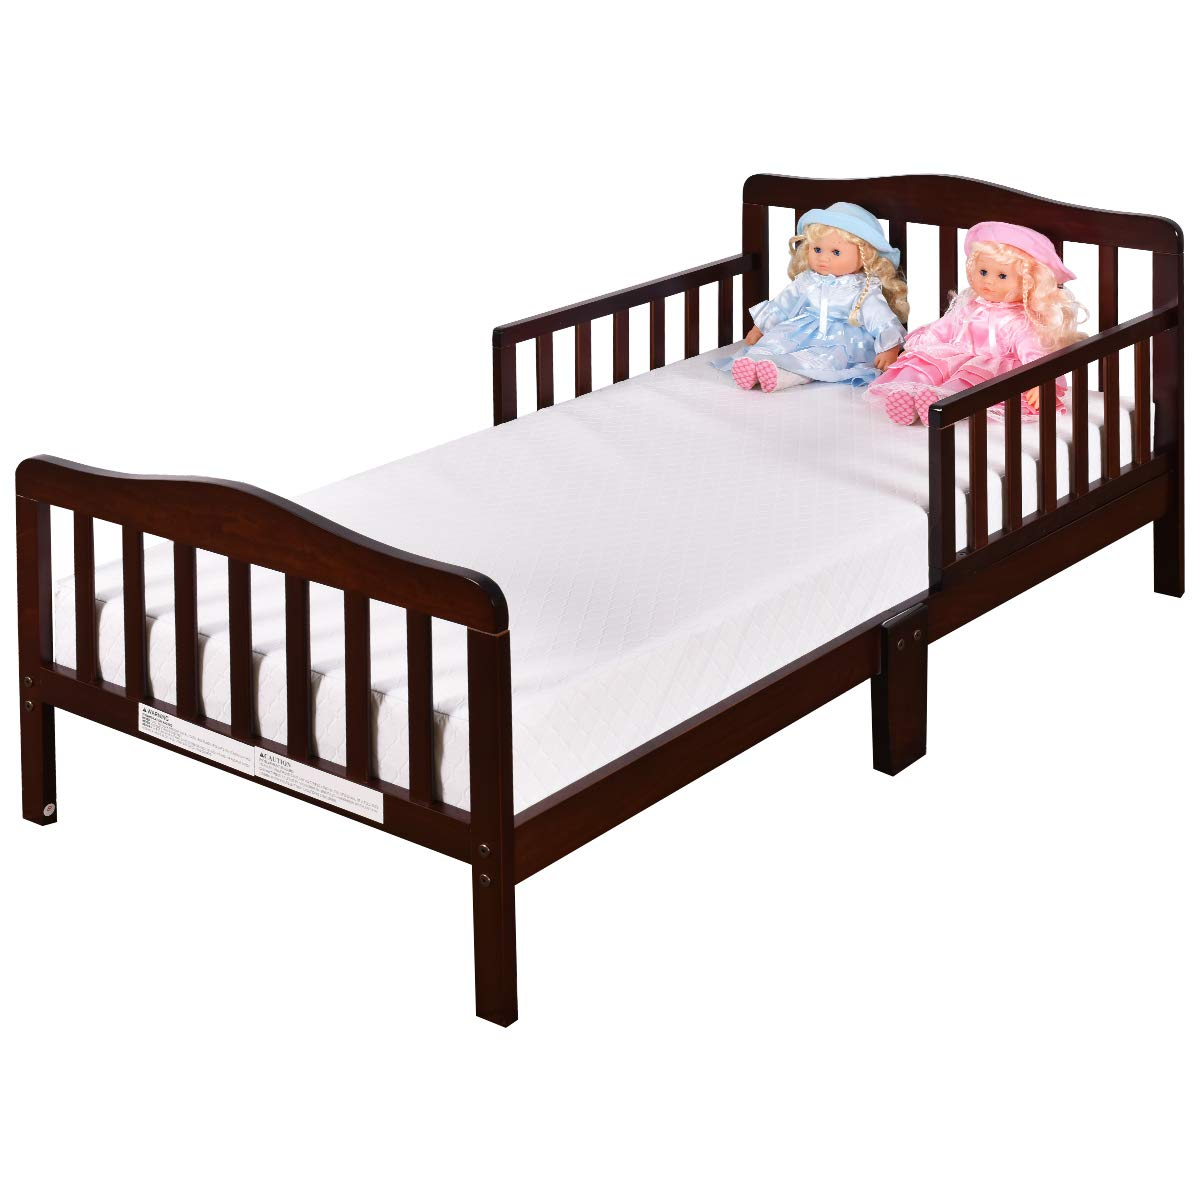 Amazon com costzon toddler bed wood kids bedframe children classic sleeping bedroom furniture w safety rail fence cherry baby